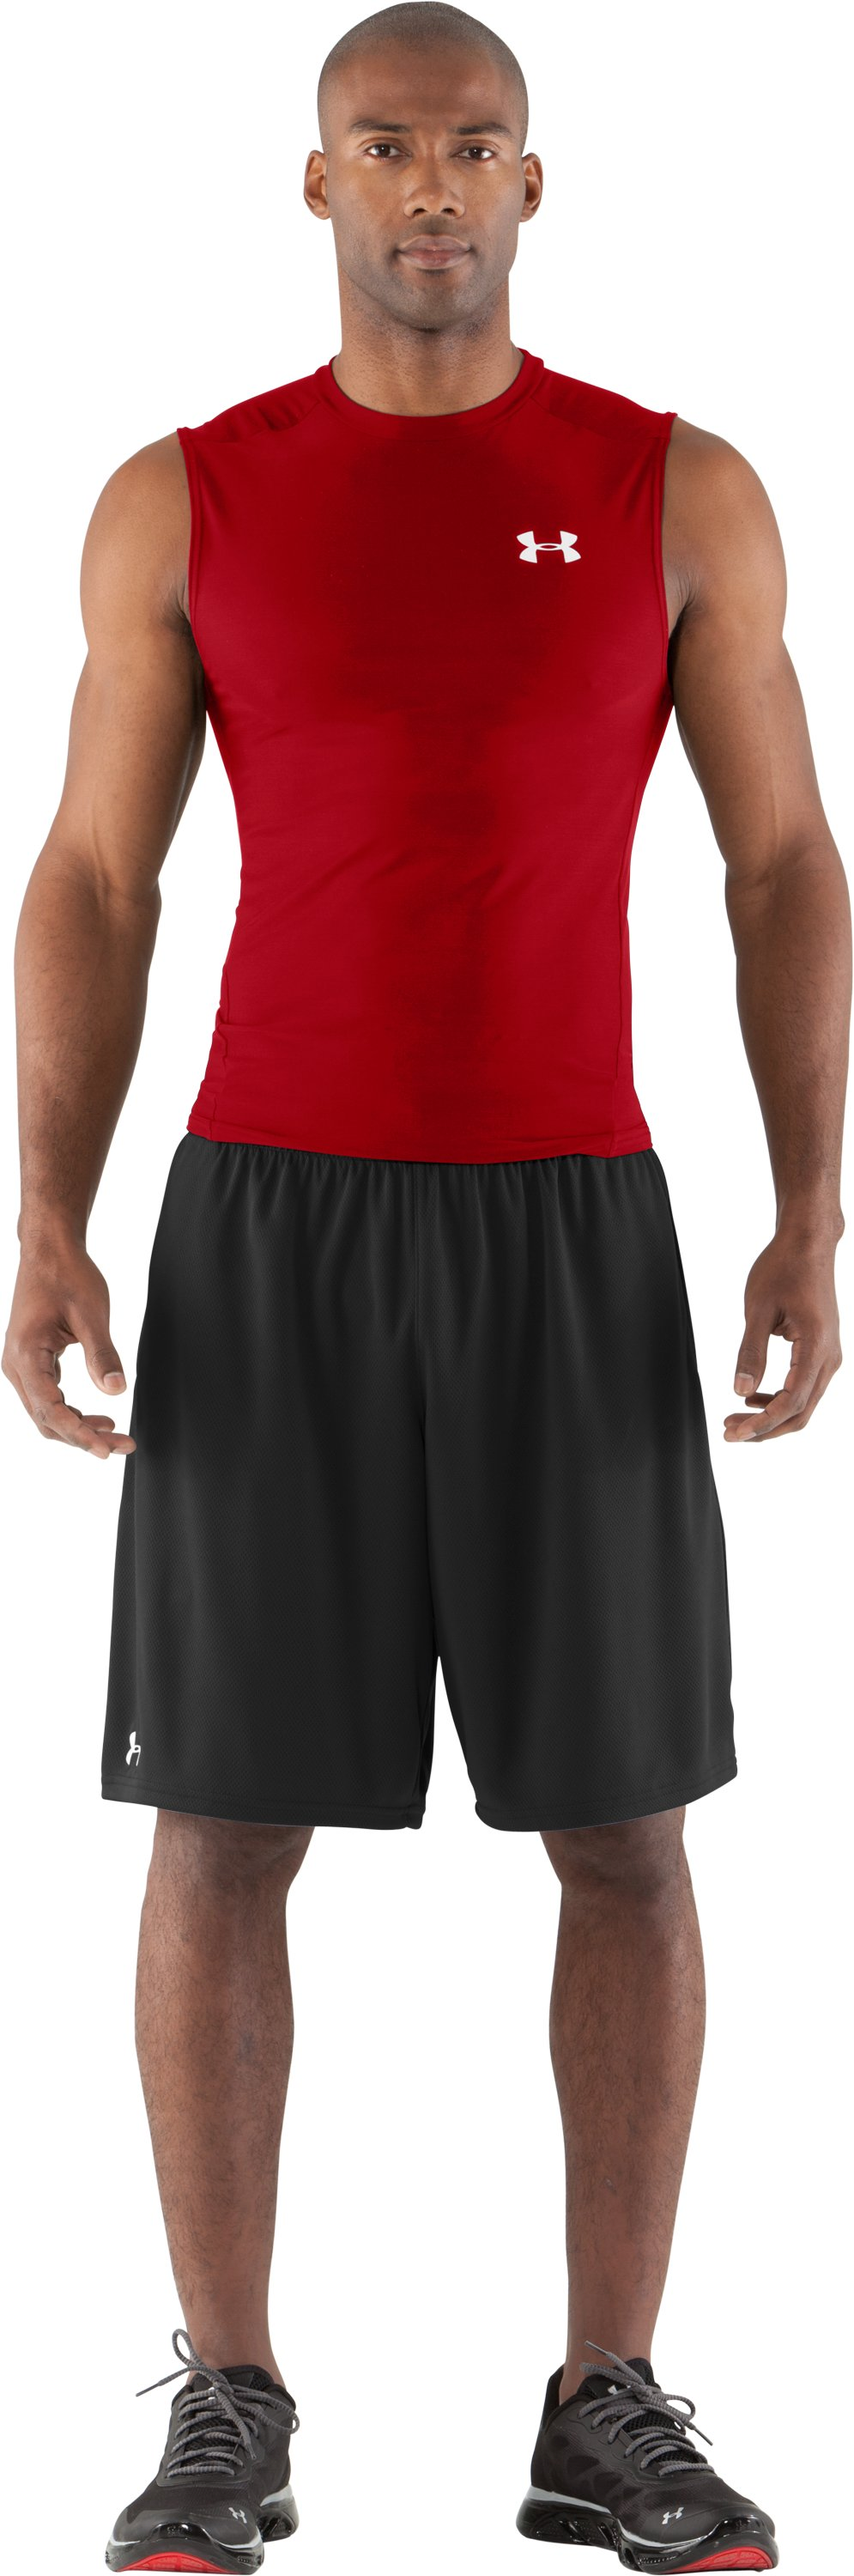 Men's HeatGear® Compression Sleeveless T-Shirt, Red, Front